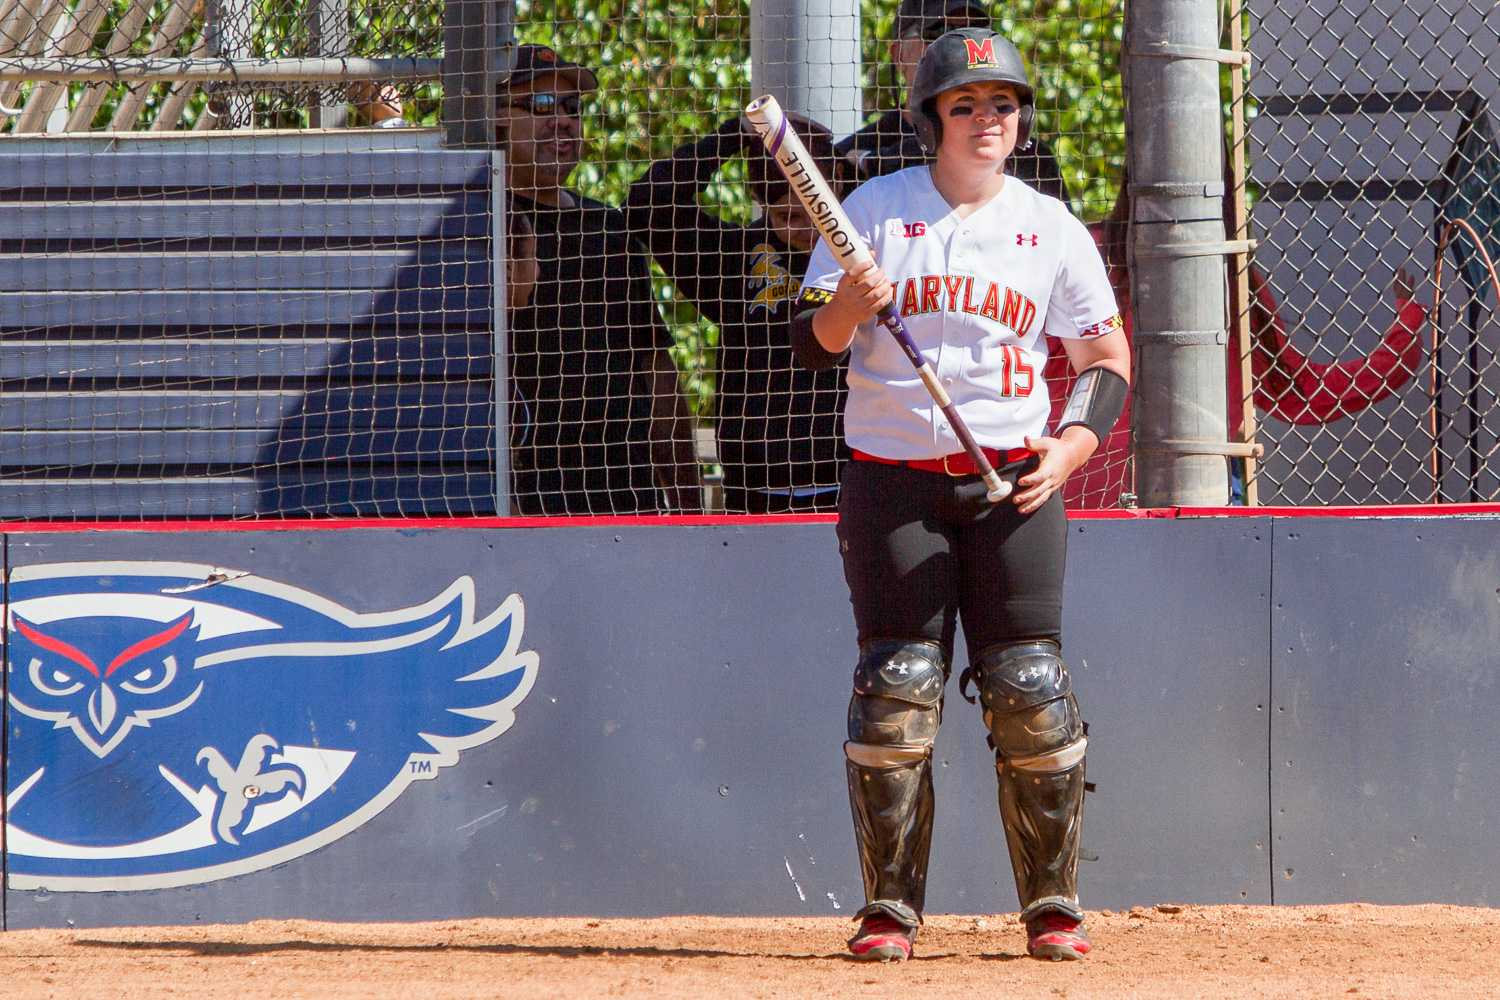 Senior catcher Shannon Bustillos waits in the on-deck circle for her turn to bat. Bustillos had one of the Terrapins' seven hits on the day.